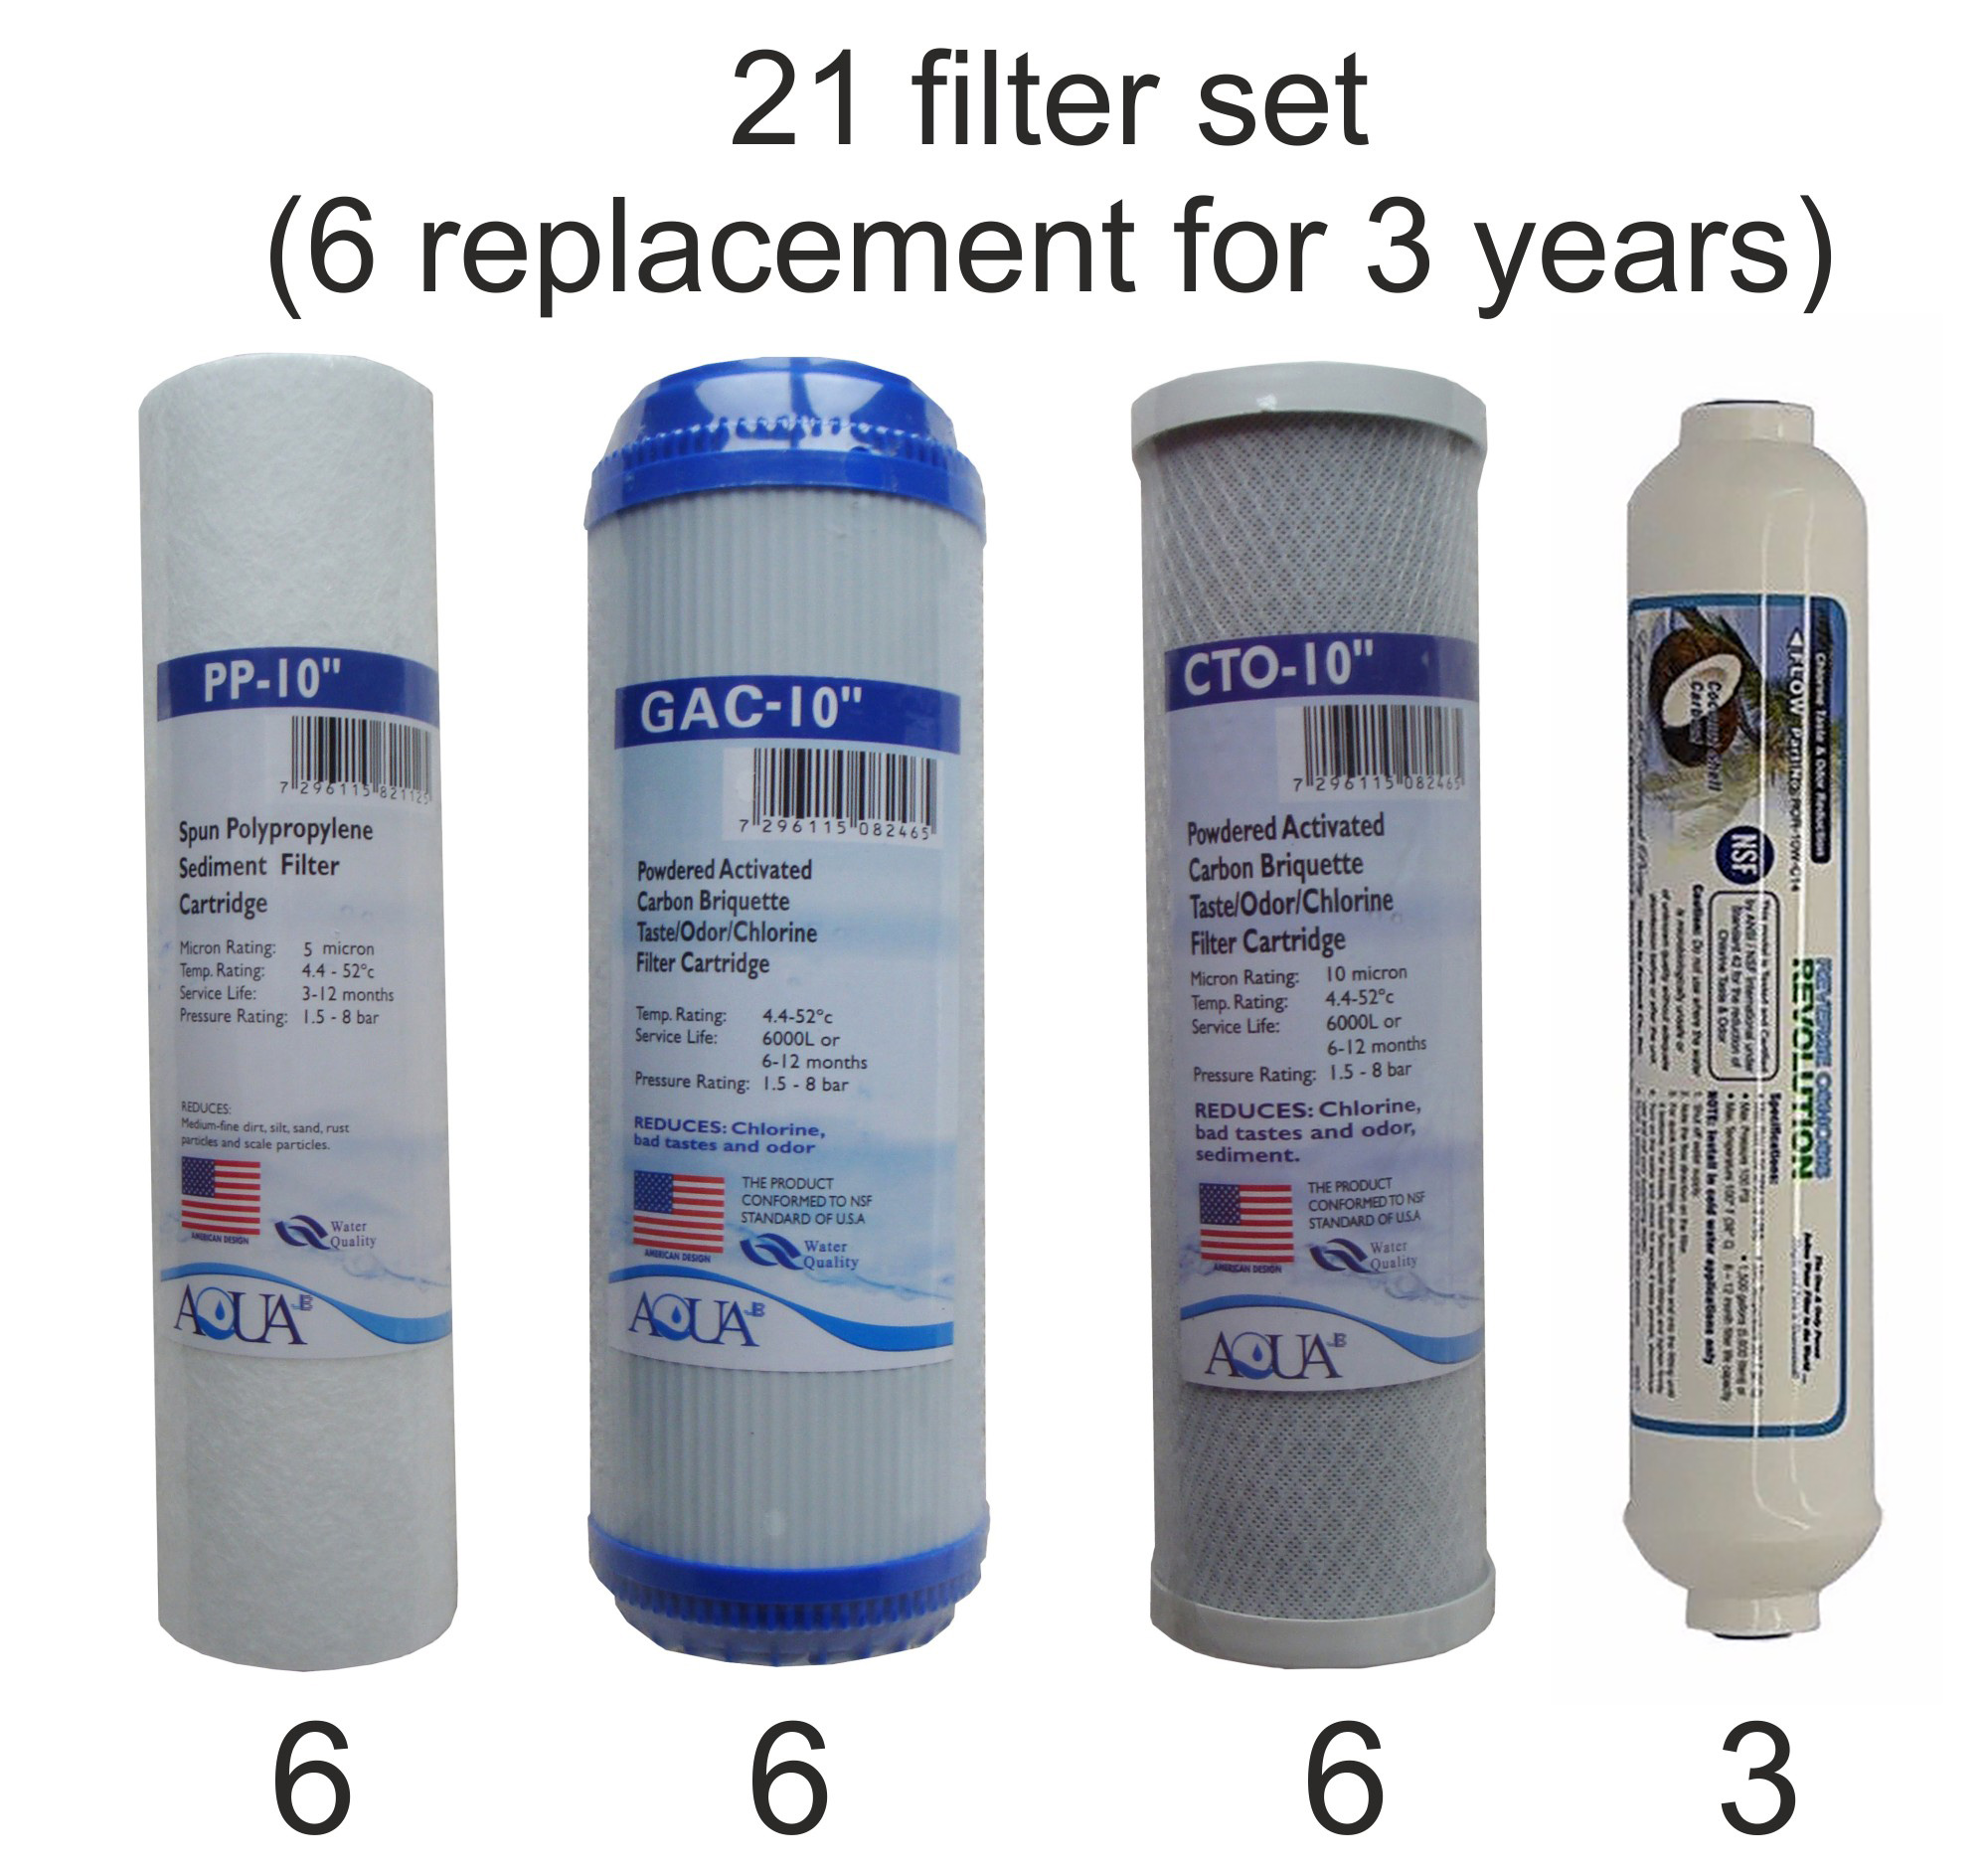 Universal 3 Year Supply for 5-stage Undersink Reverse Osmosis Wtaer Systems (21 filter set)